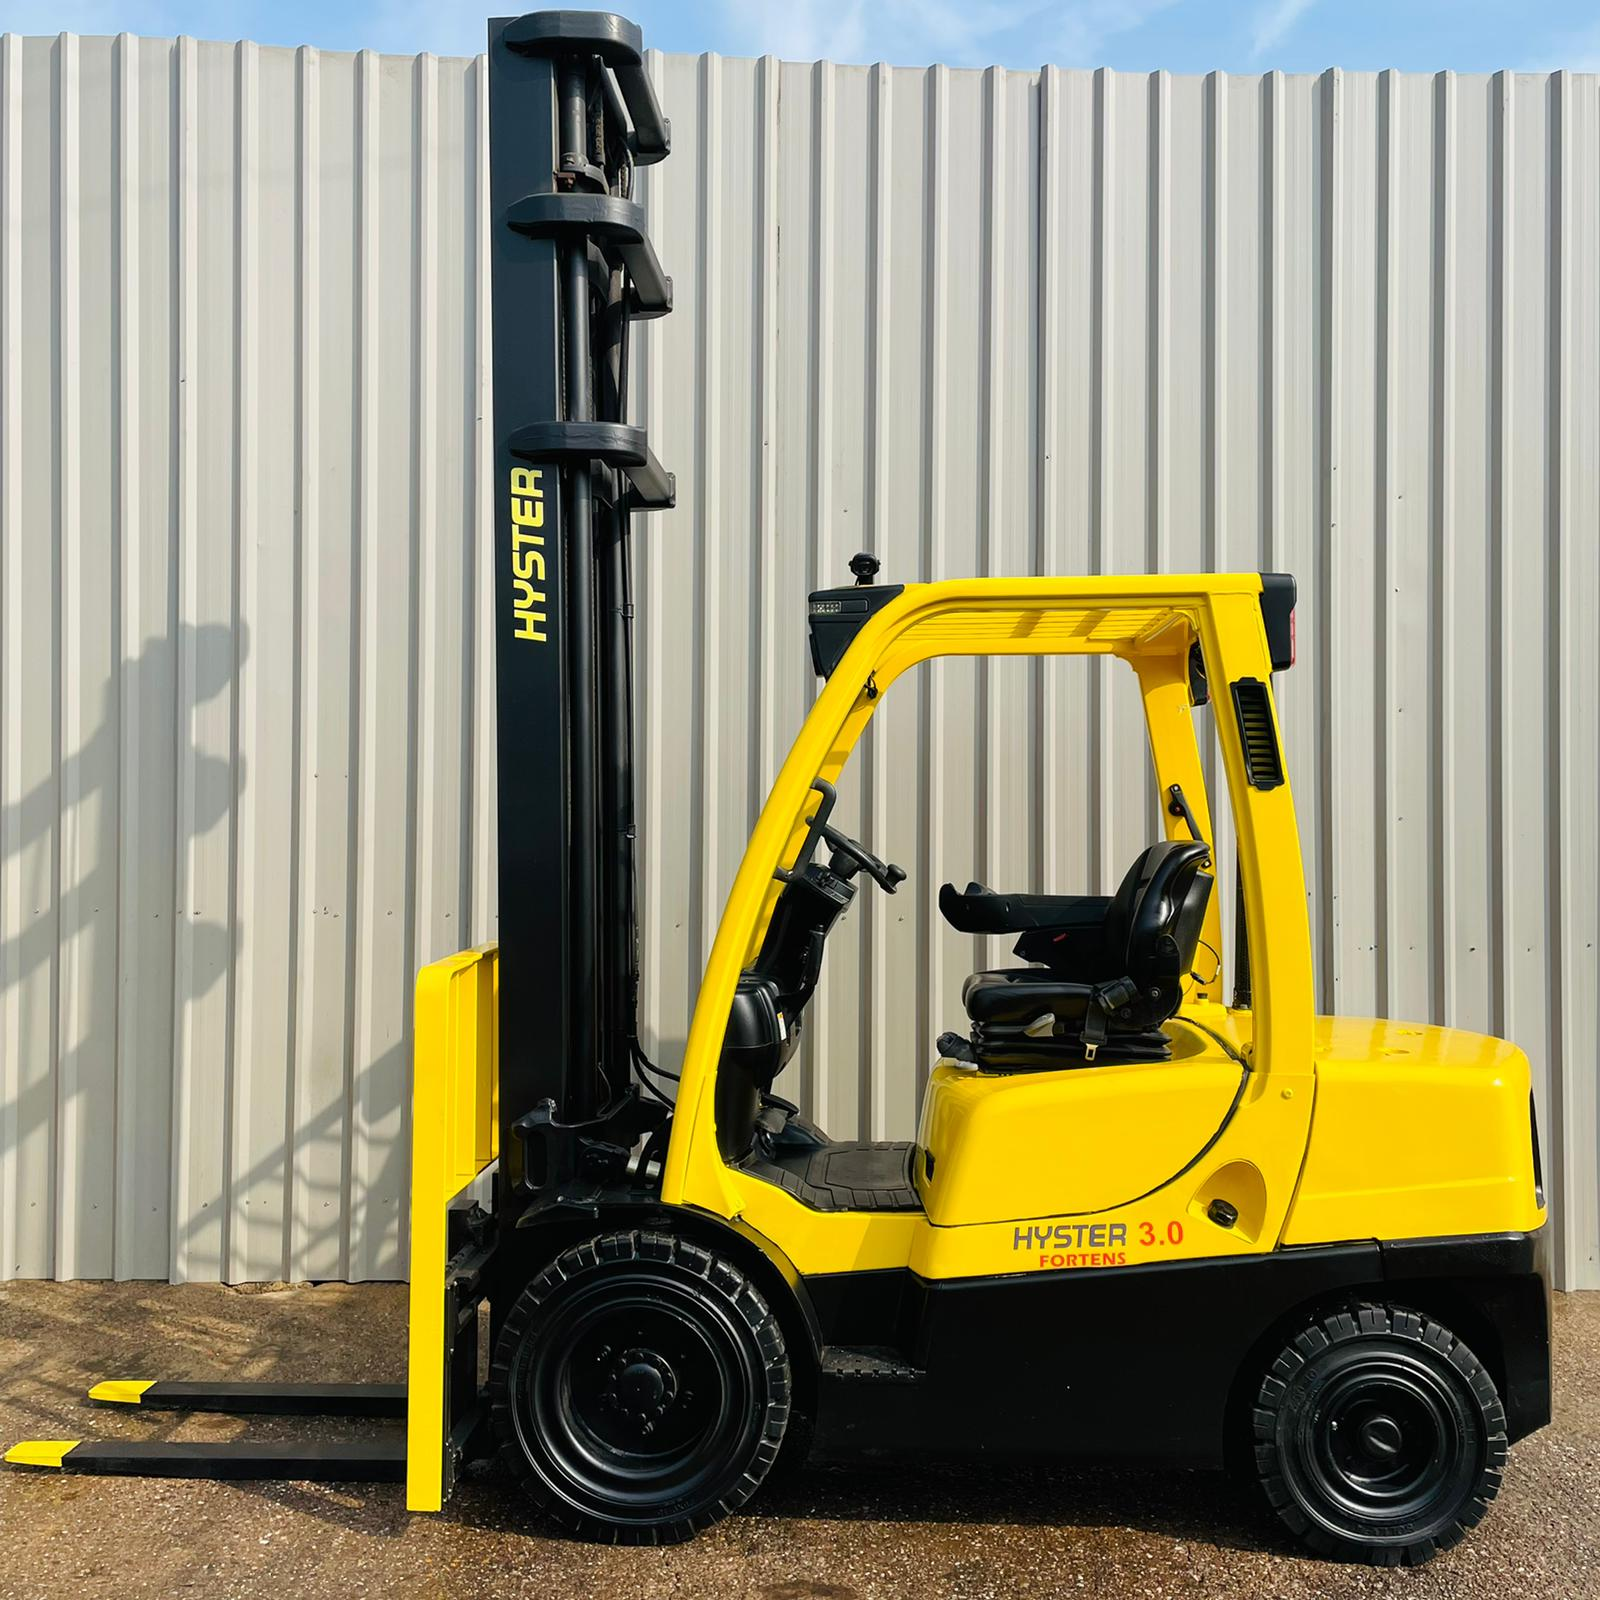 HYSTER H3.0FT #3471 WhatsApp Image 2021-07-23 at 9.30.35 AM (1)